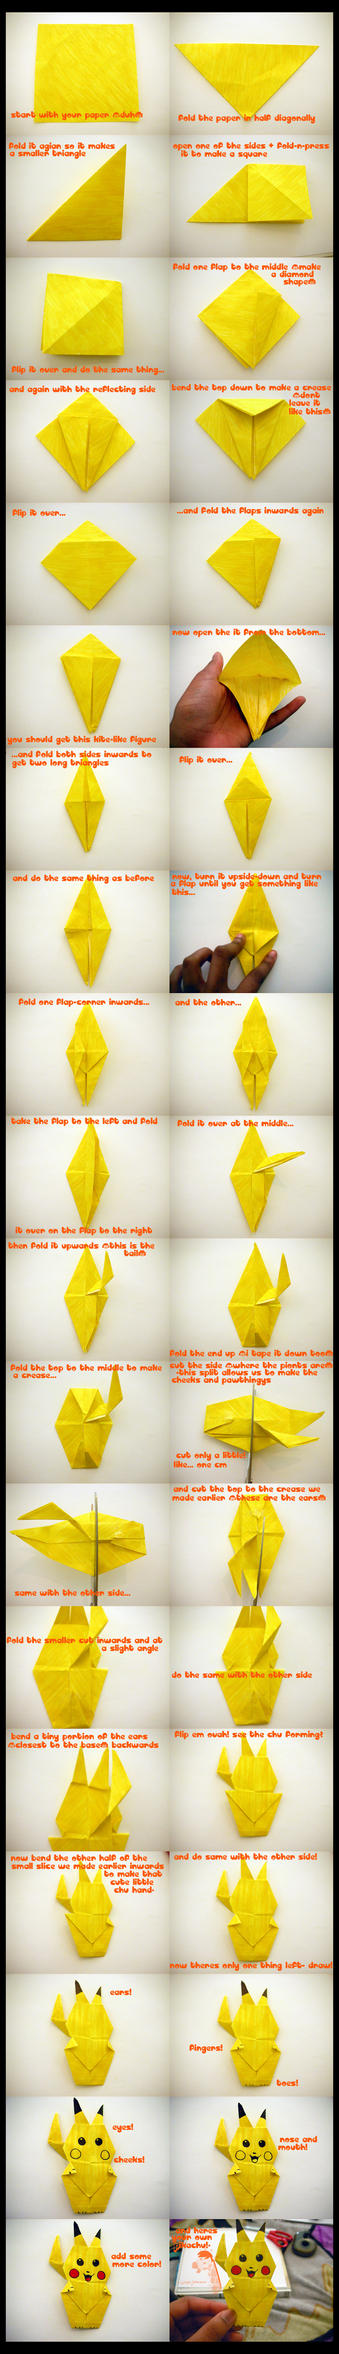 How to Make an Origami Pikachu by wesroz